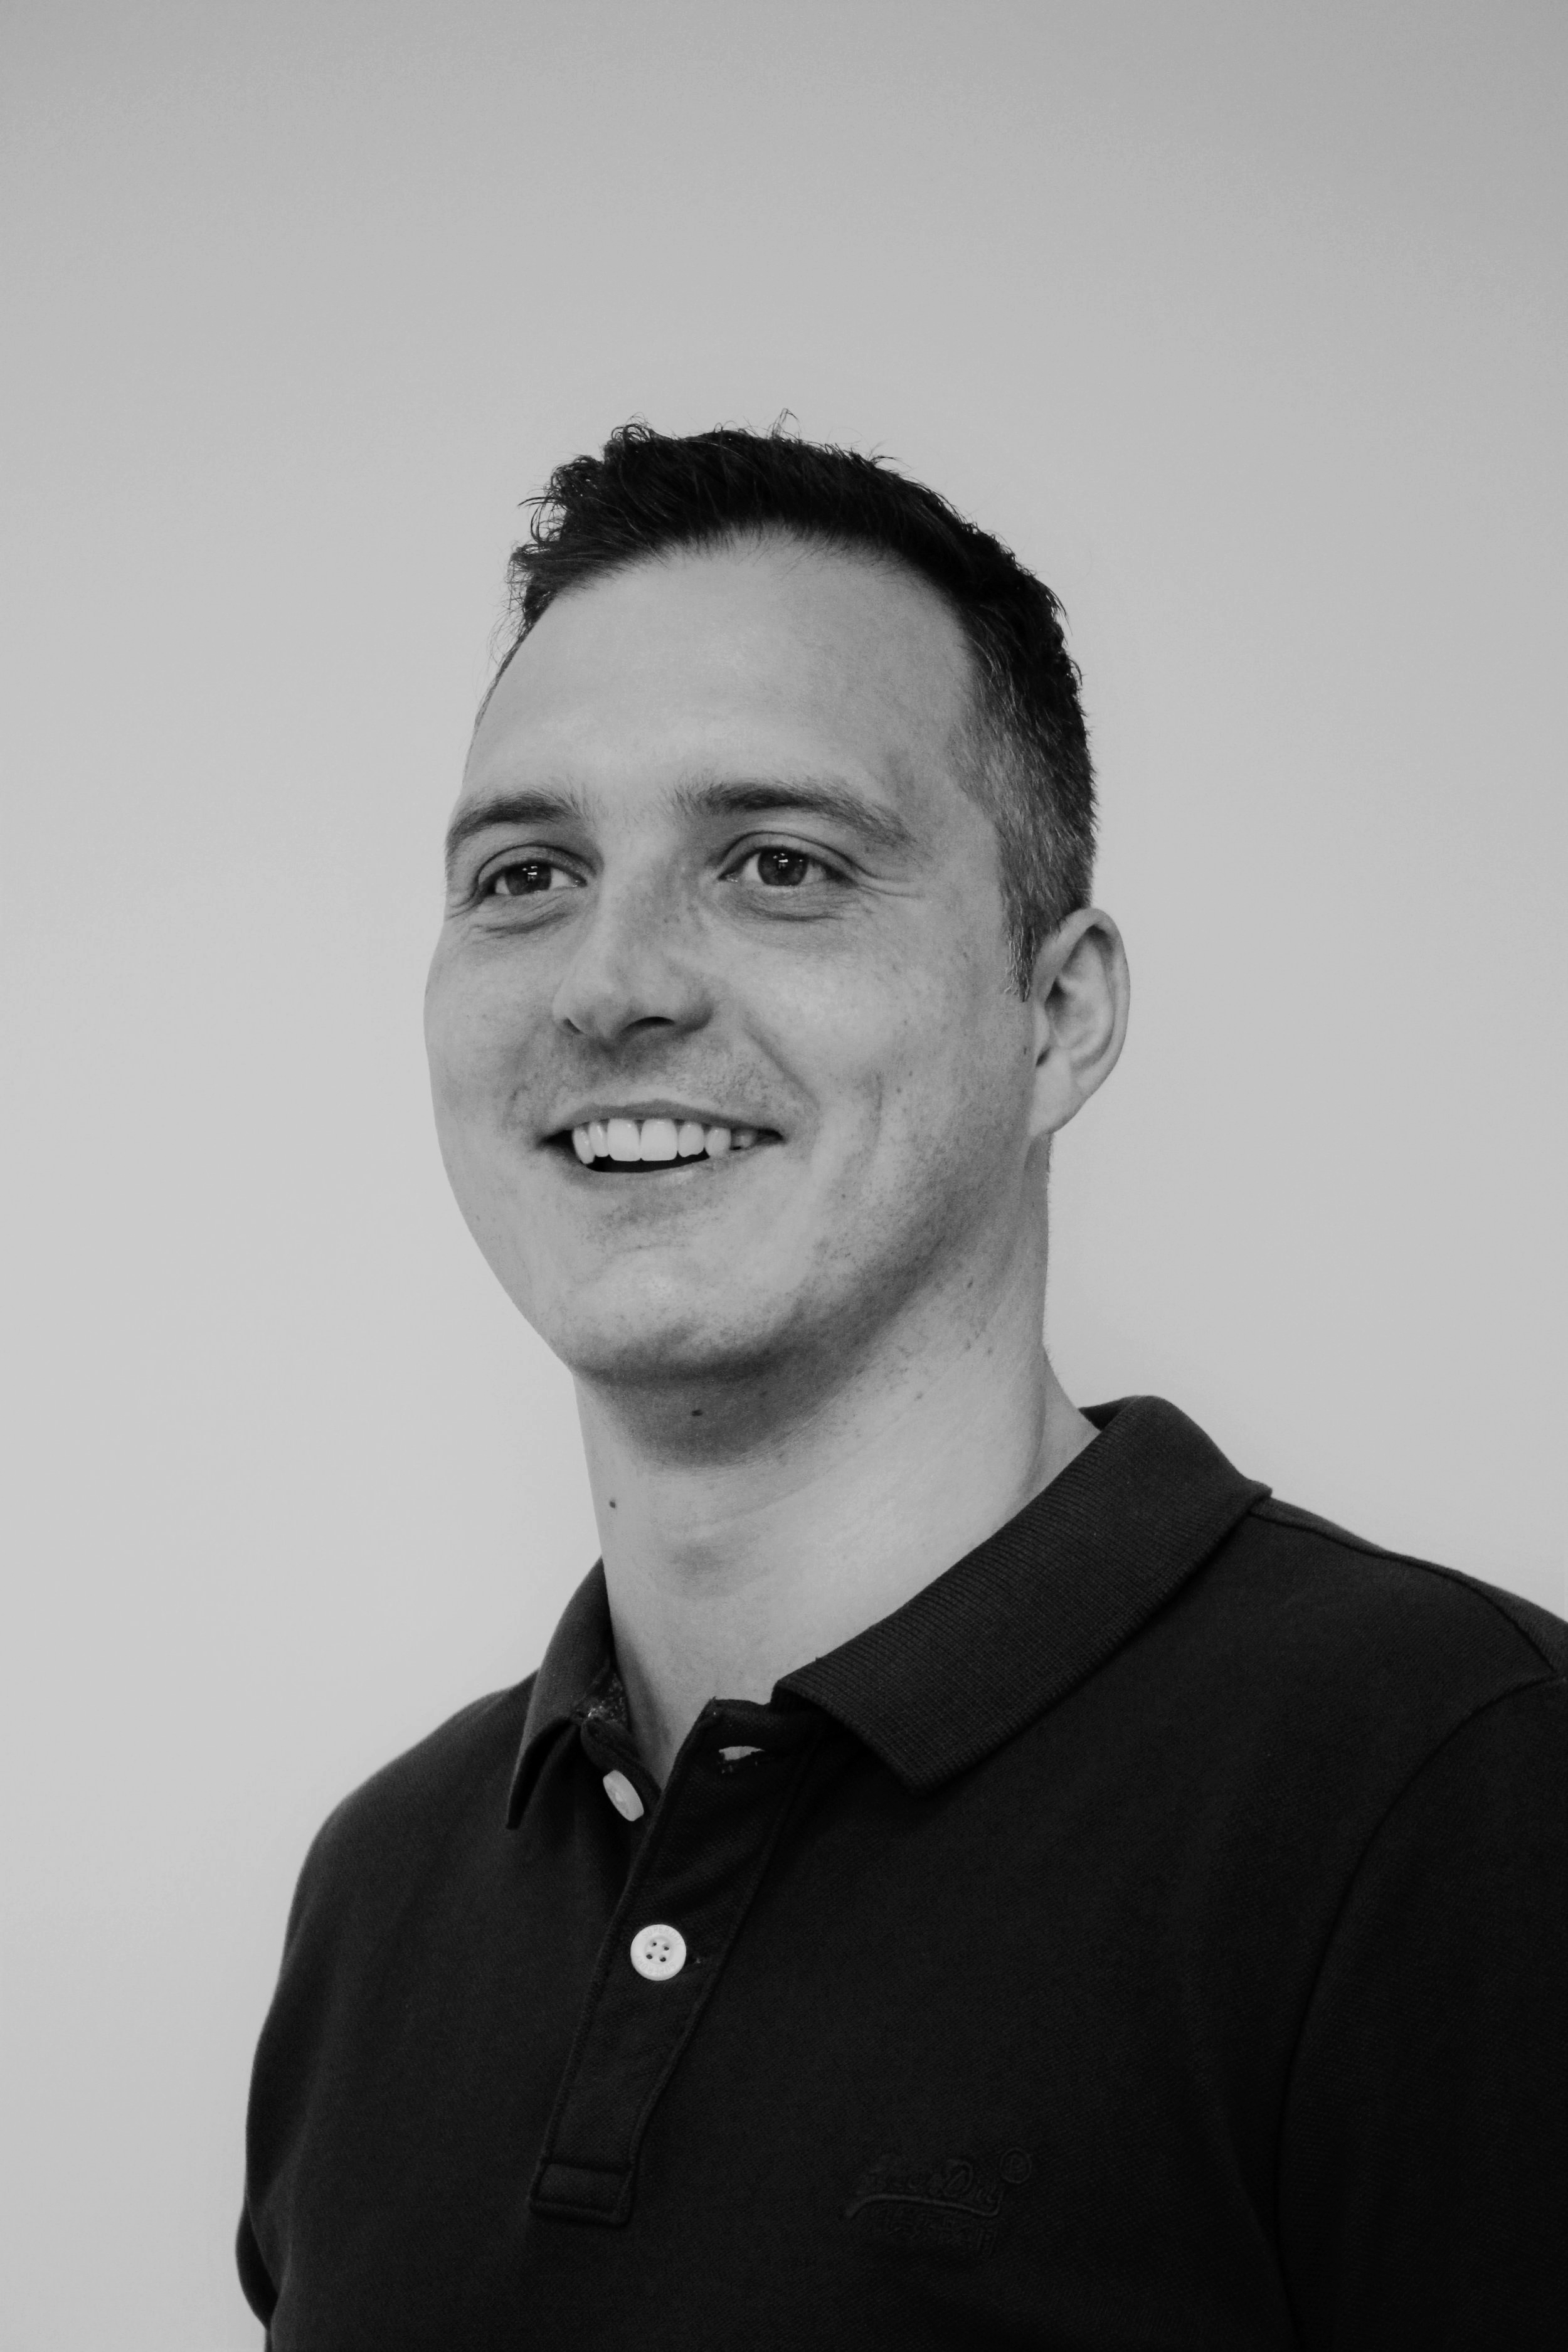 With over 20 years experience in the food industry, particularly in the service sector and manufacturing, Rhys has developed successful businesses with the major UK retailers, foodservice, suppliers & vendors, along with building highly effective teams within both PLC and SME companies.    Rhys is also a Coach & Mentor to a number of business owners.